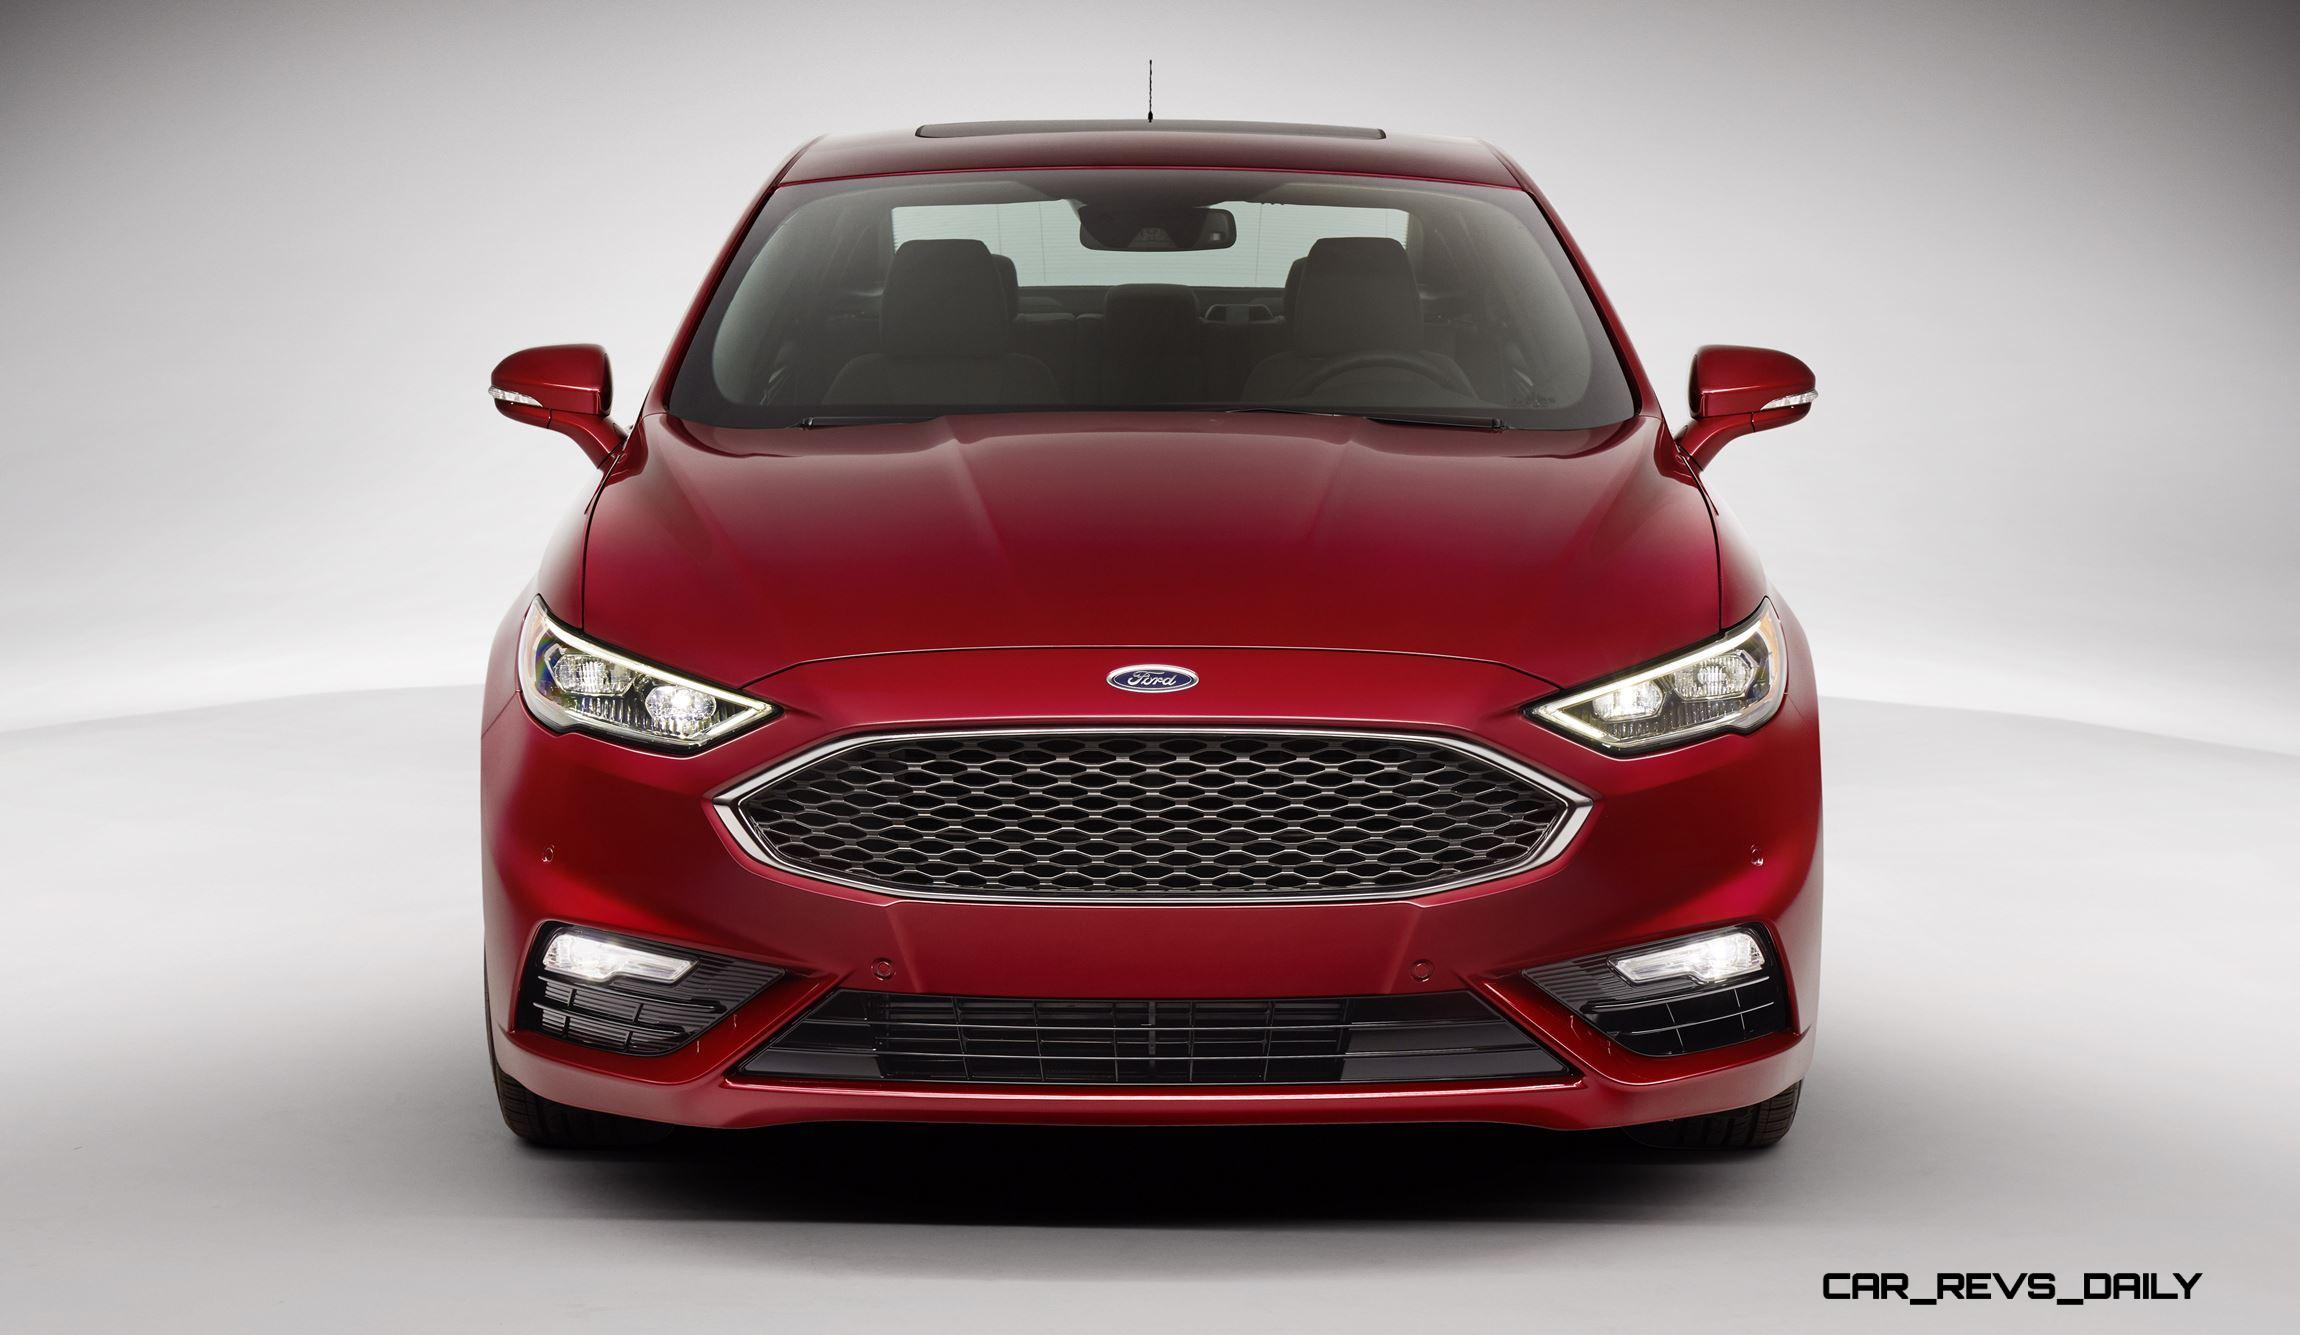 325HP V6TT 2017 Ford FUSION SPORT Leads Refreshed Midsize Sedan Lineup